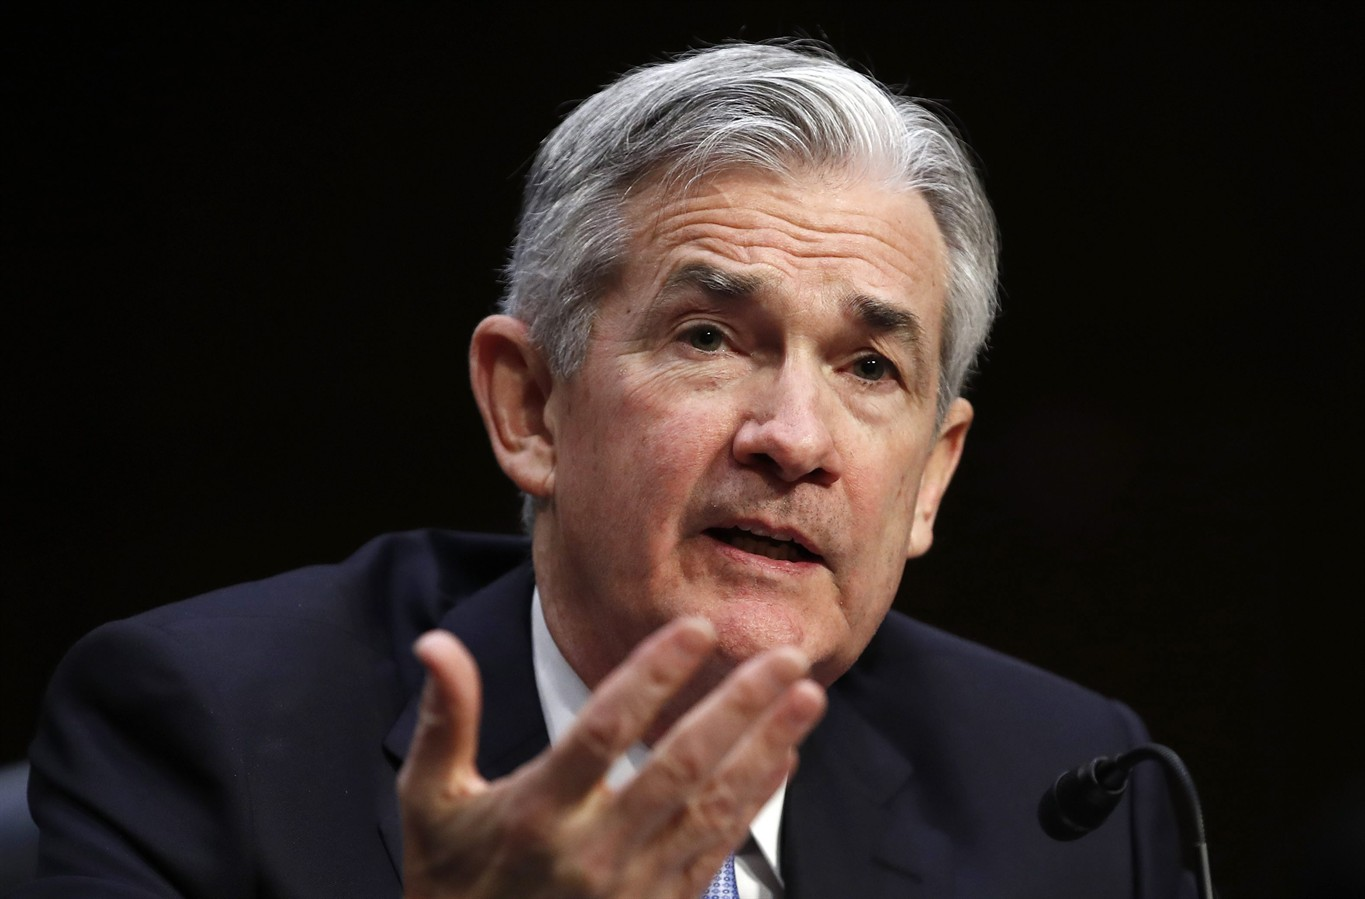 Senate Banking Committee Approves Jerome Powell as Fed Chair